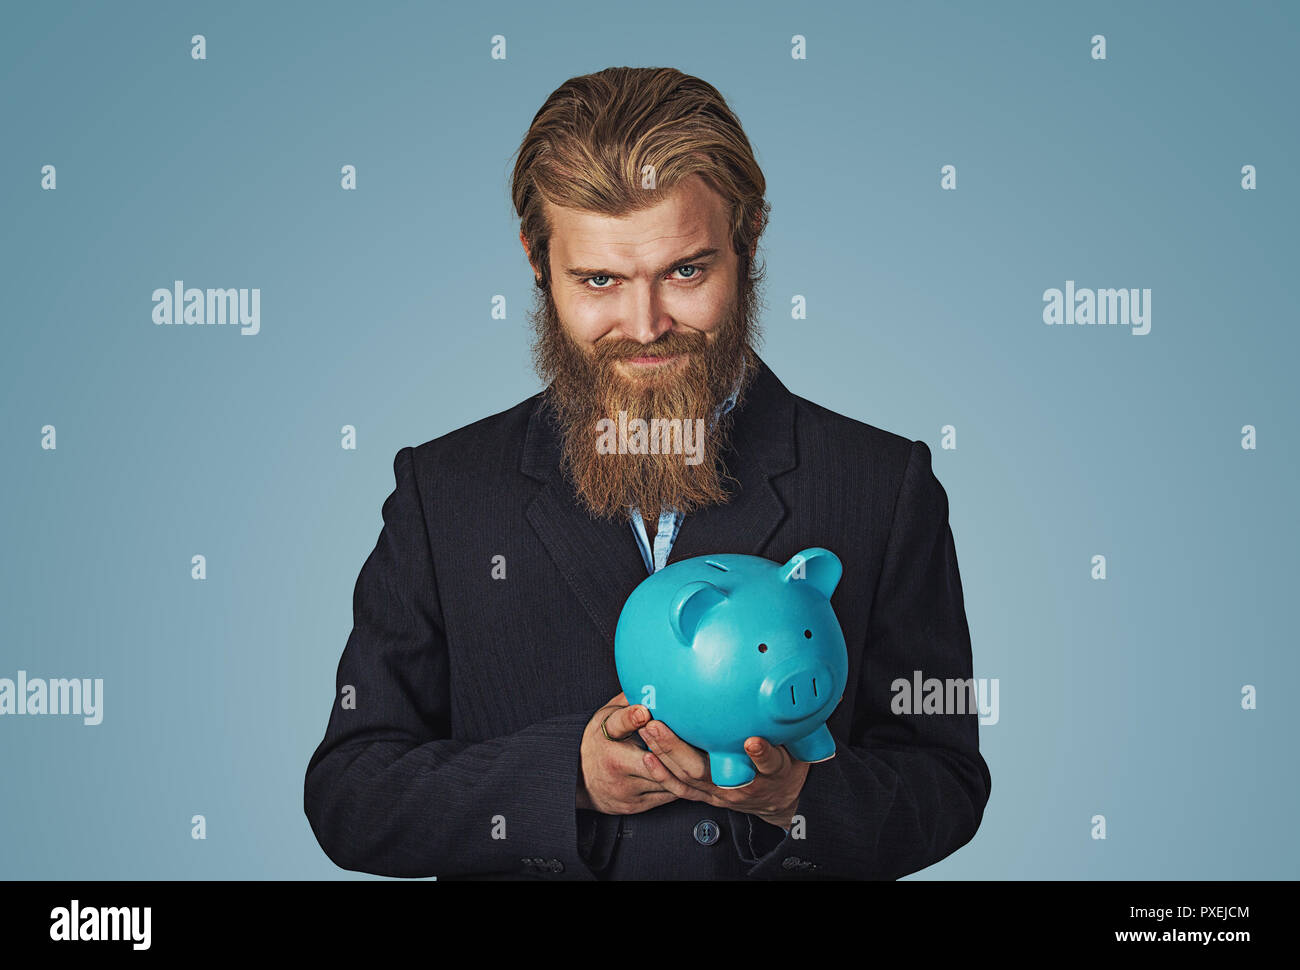 Sly Young man holding piggy bank plotting. Bearded hipster businessman Isolated on blue Background. Negative face expression, human emotion, body lang - Stock Image